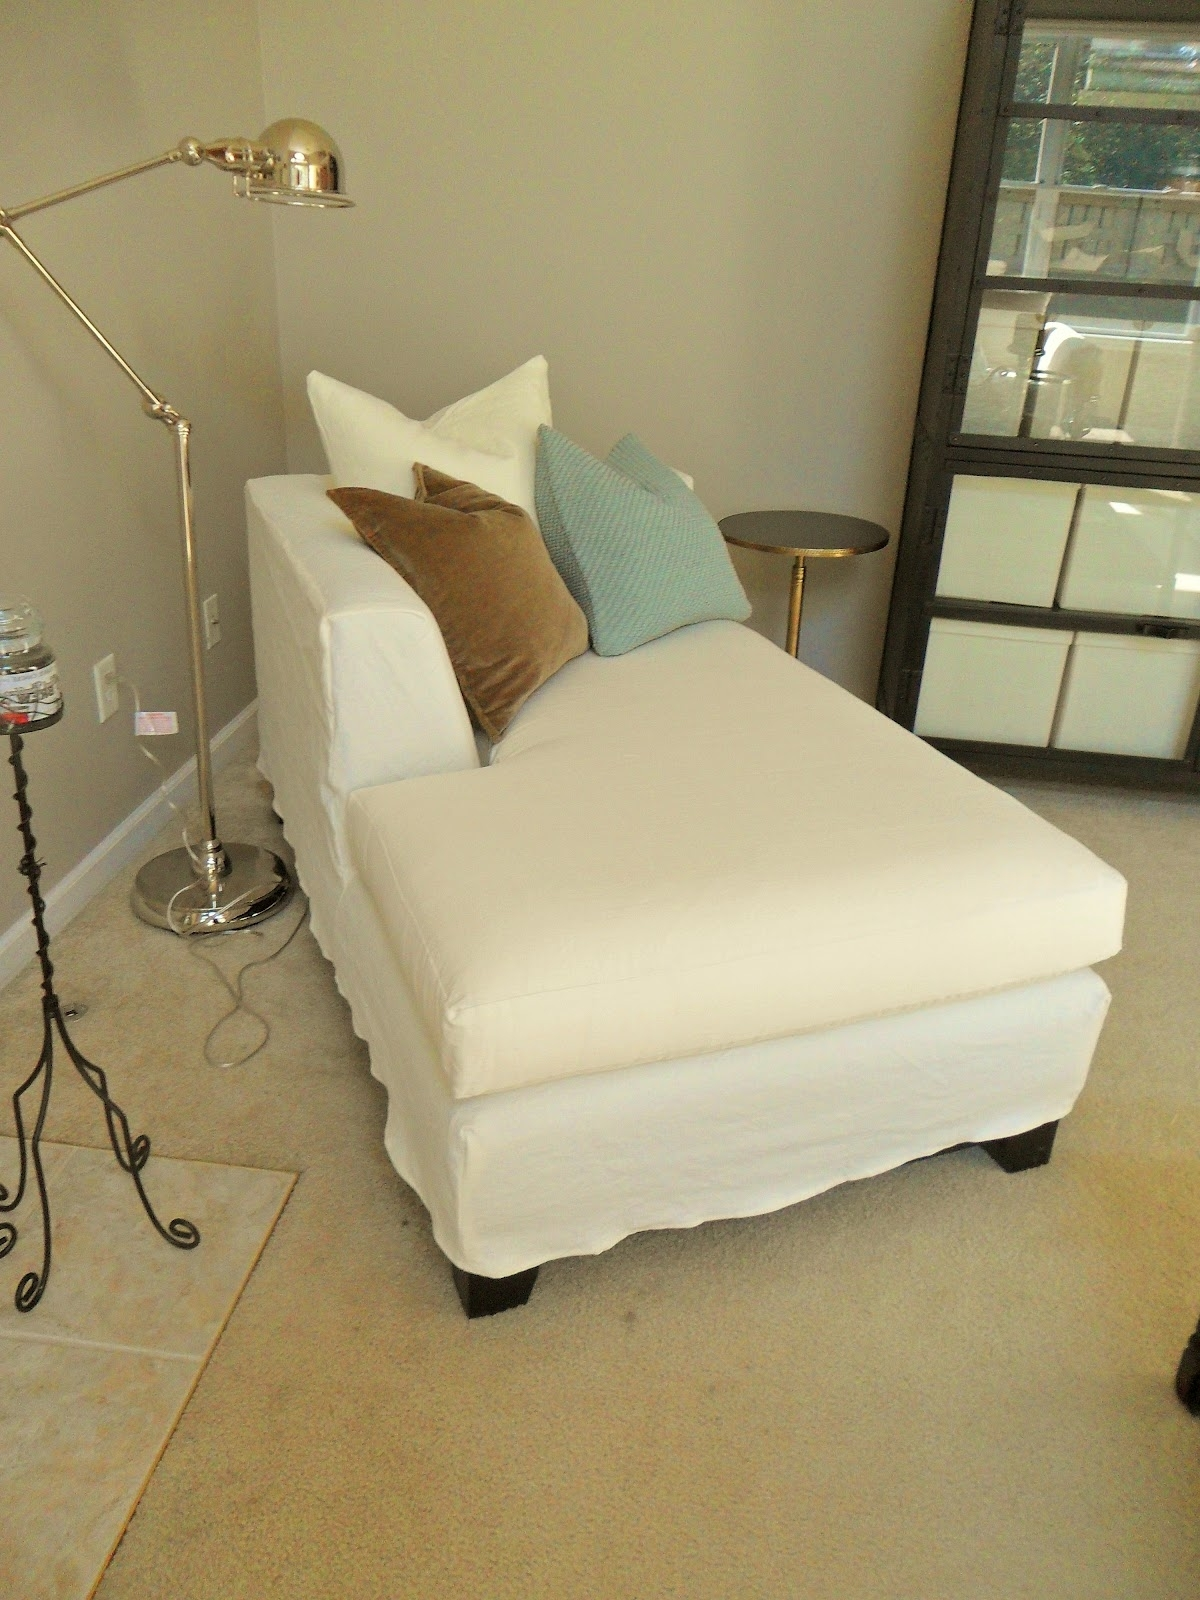 Slipcovesr For Chaise Lounge Regarding 2017 Chaise Lounge Slipcovers Images – Home Furniture Ideas (View 2 of 15)